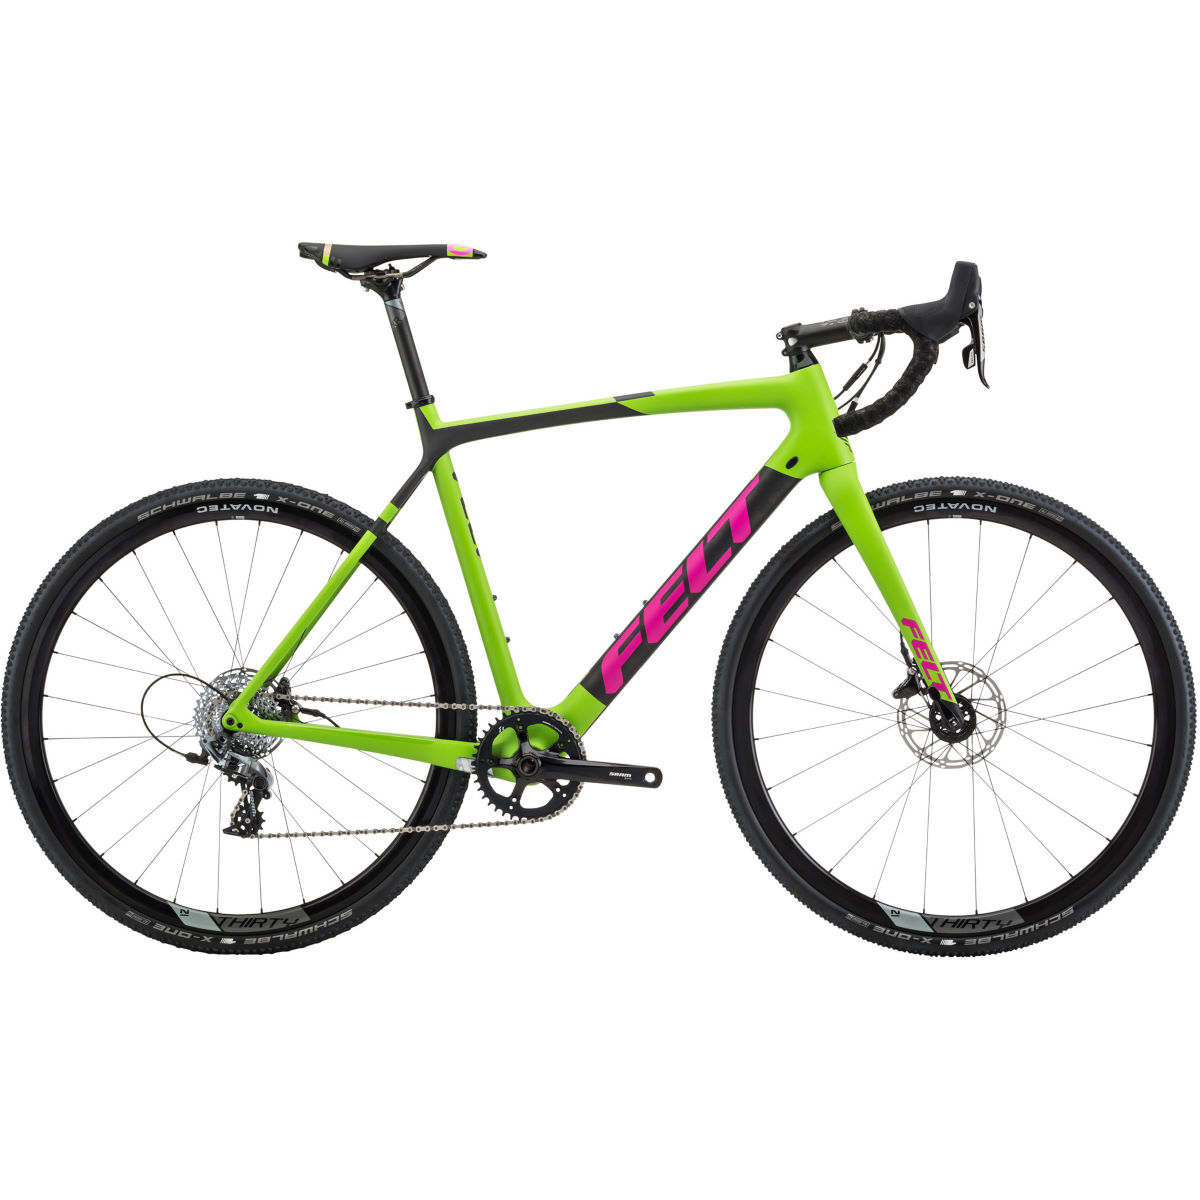 Vélo de cyclo-cross Felt F4X (2018) - 55cm Stock Bike